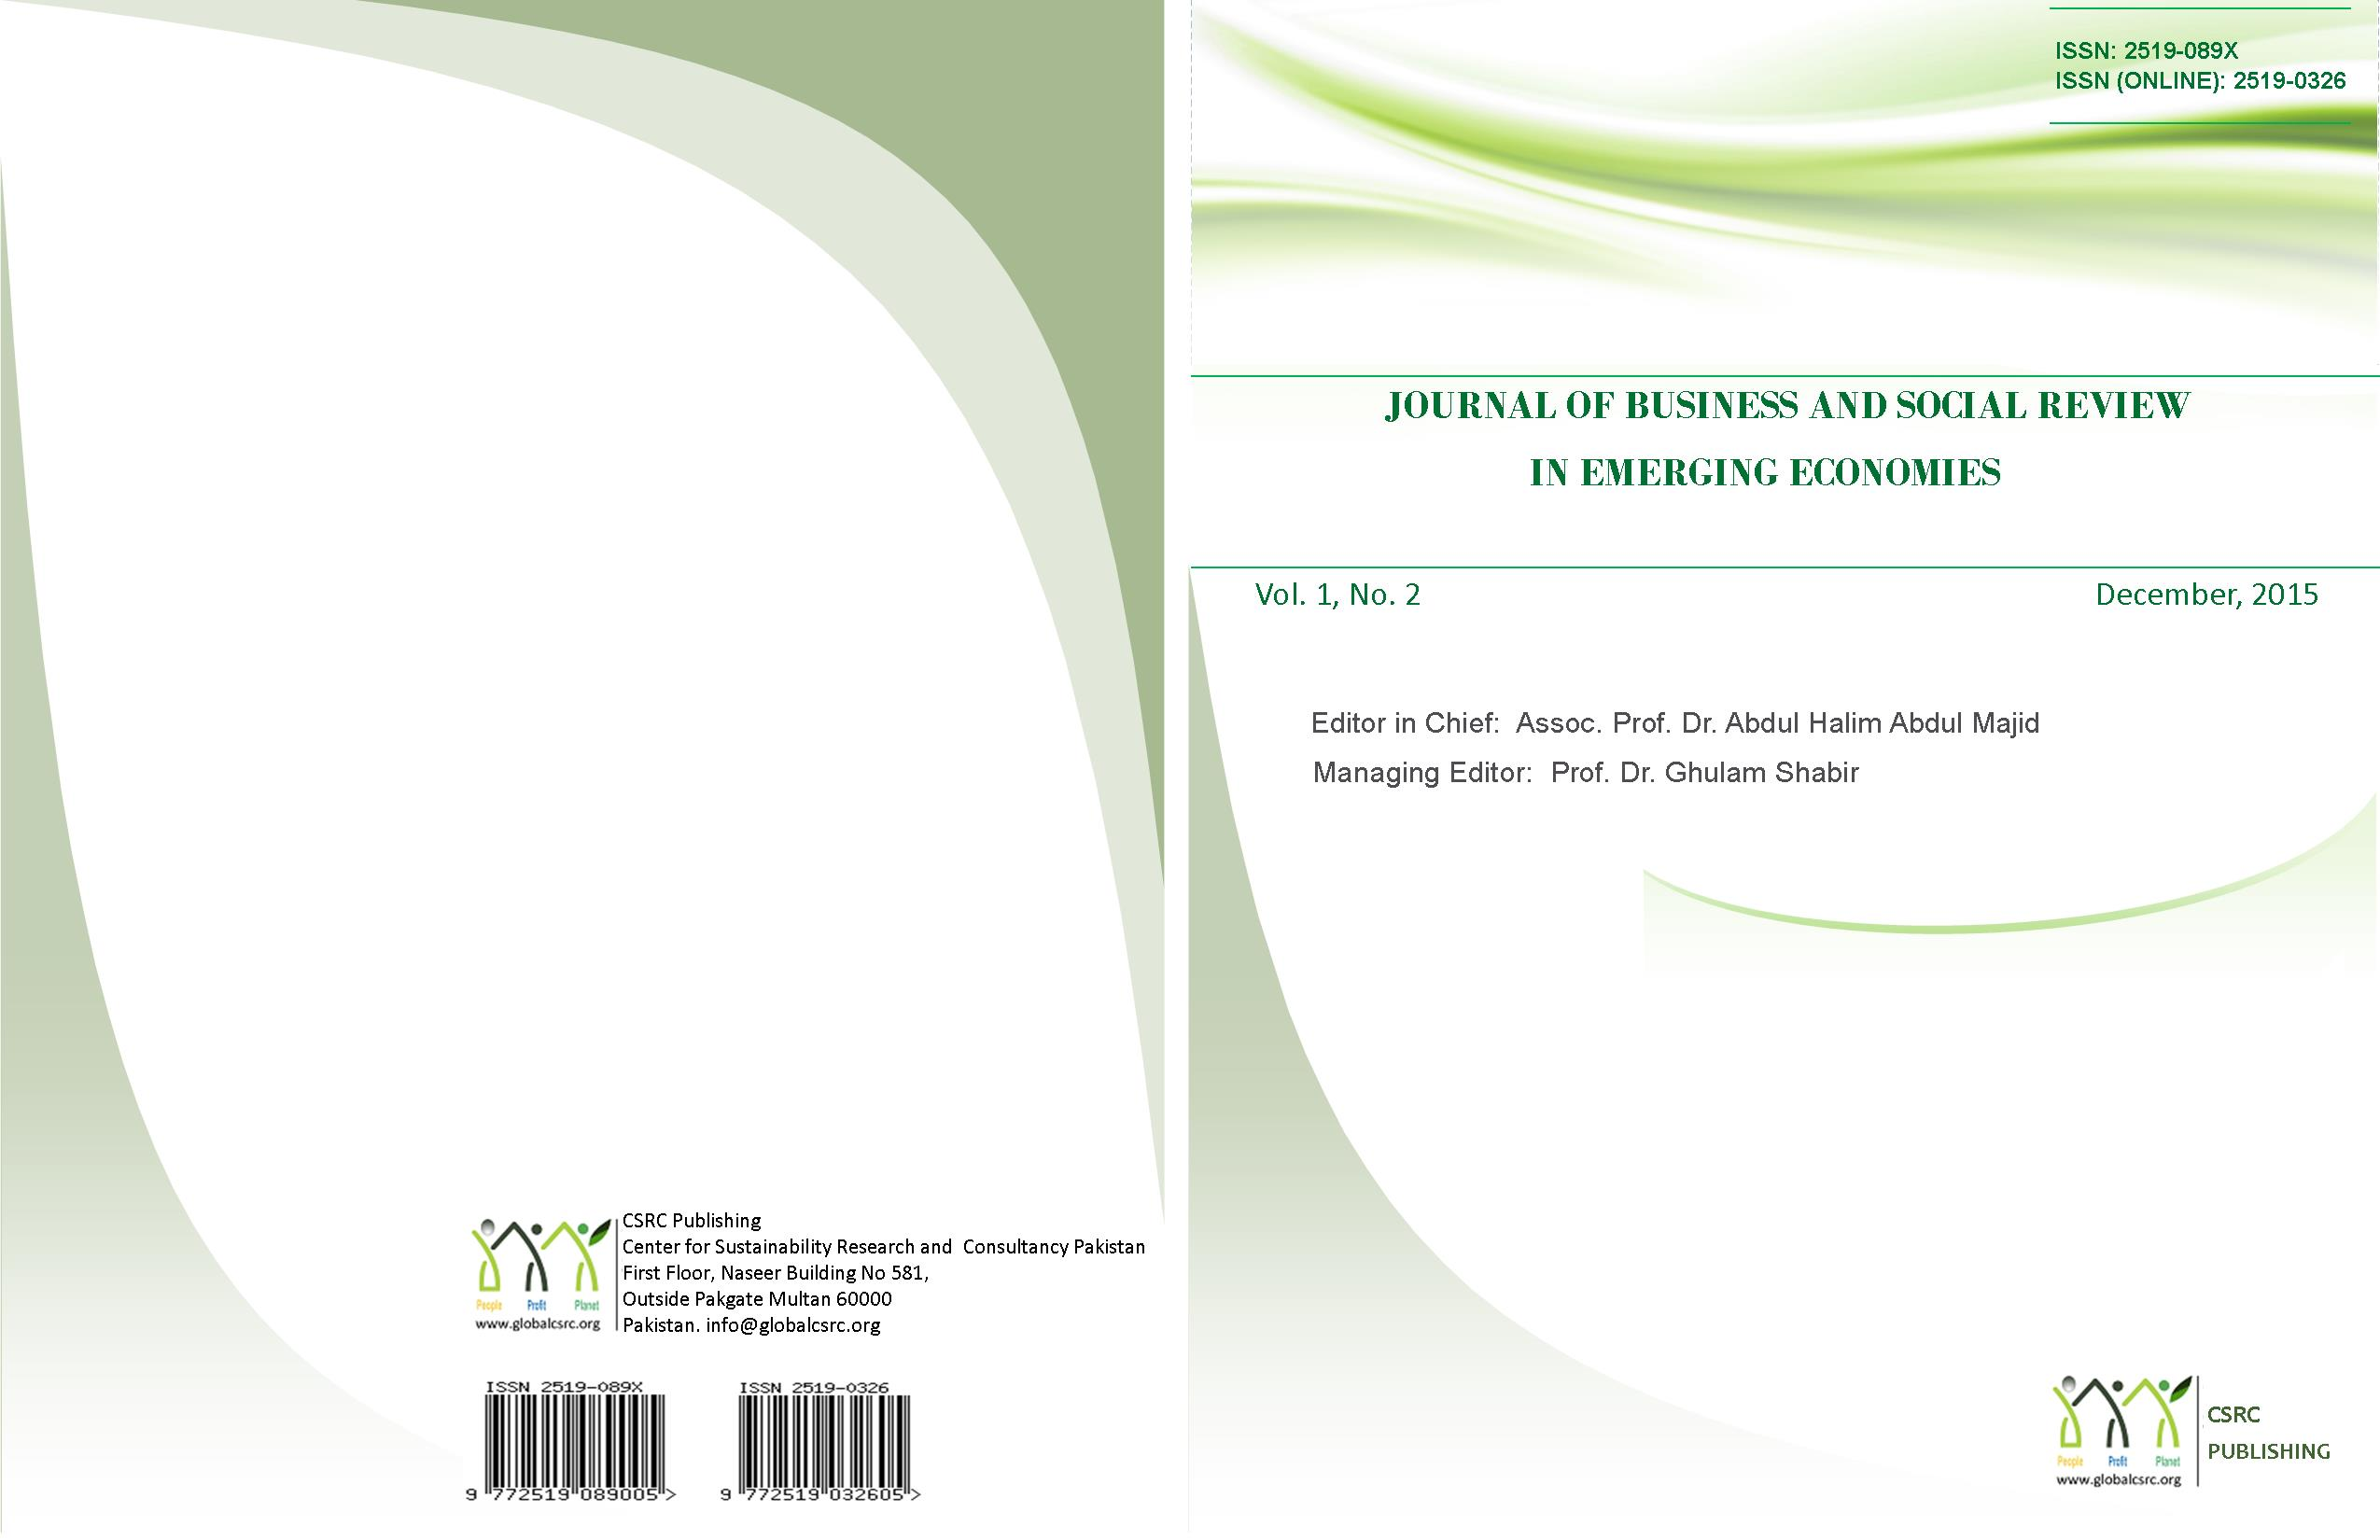 Journal of Business and Social Review in Emerging Economies, Vol 1, No. 2, December 2015